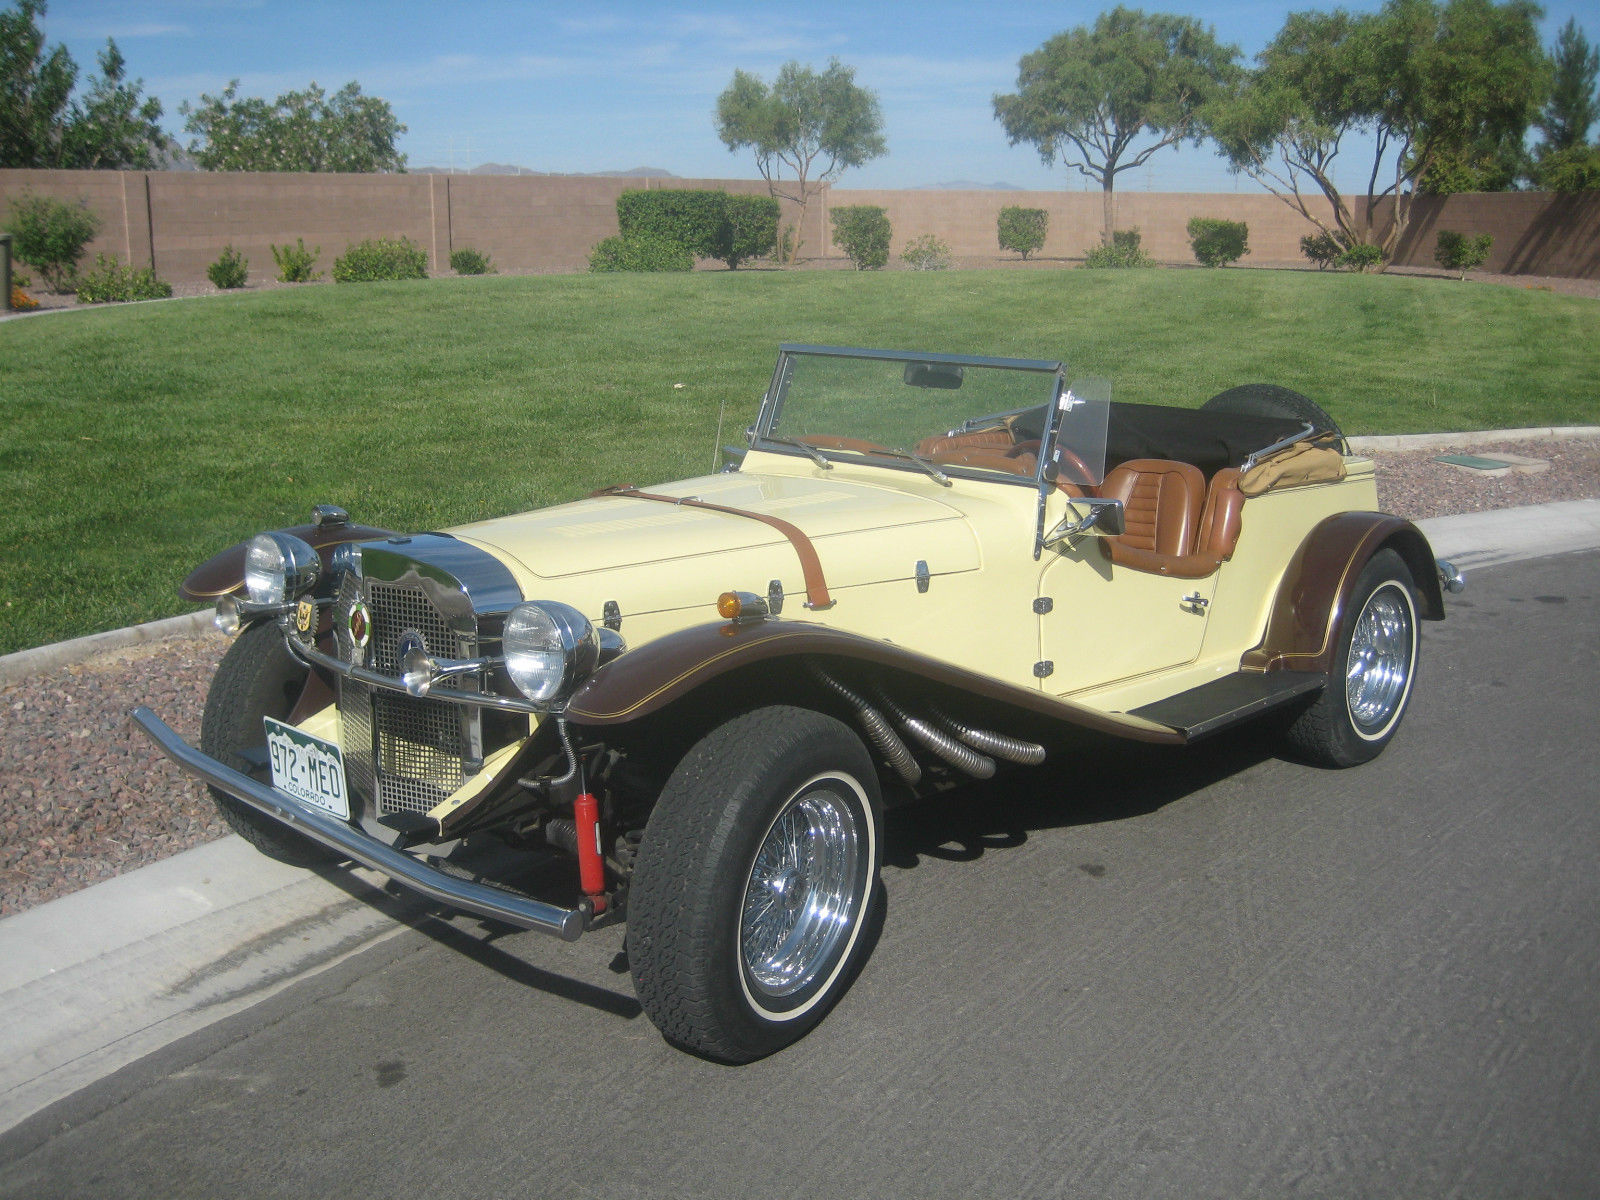 Kit Cars To Build Yourself In Usa: 1929 MERCEDES GAZELLE ROADSTER -- REPLICA/KIT CAR